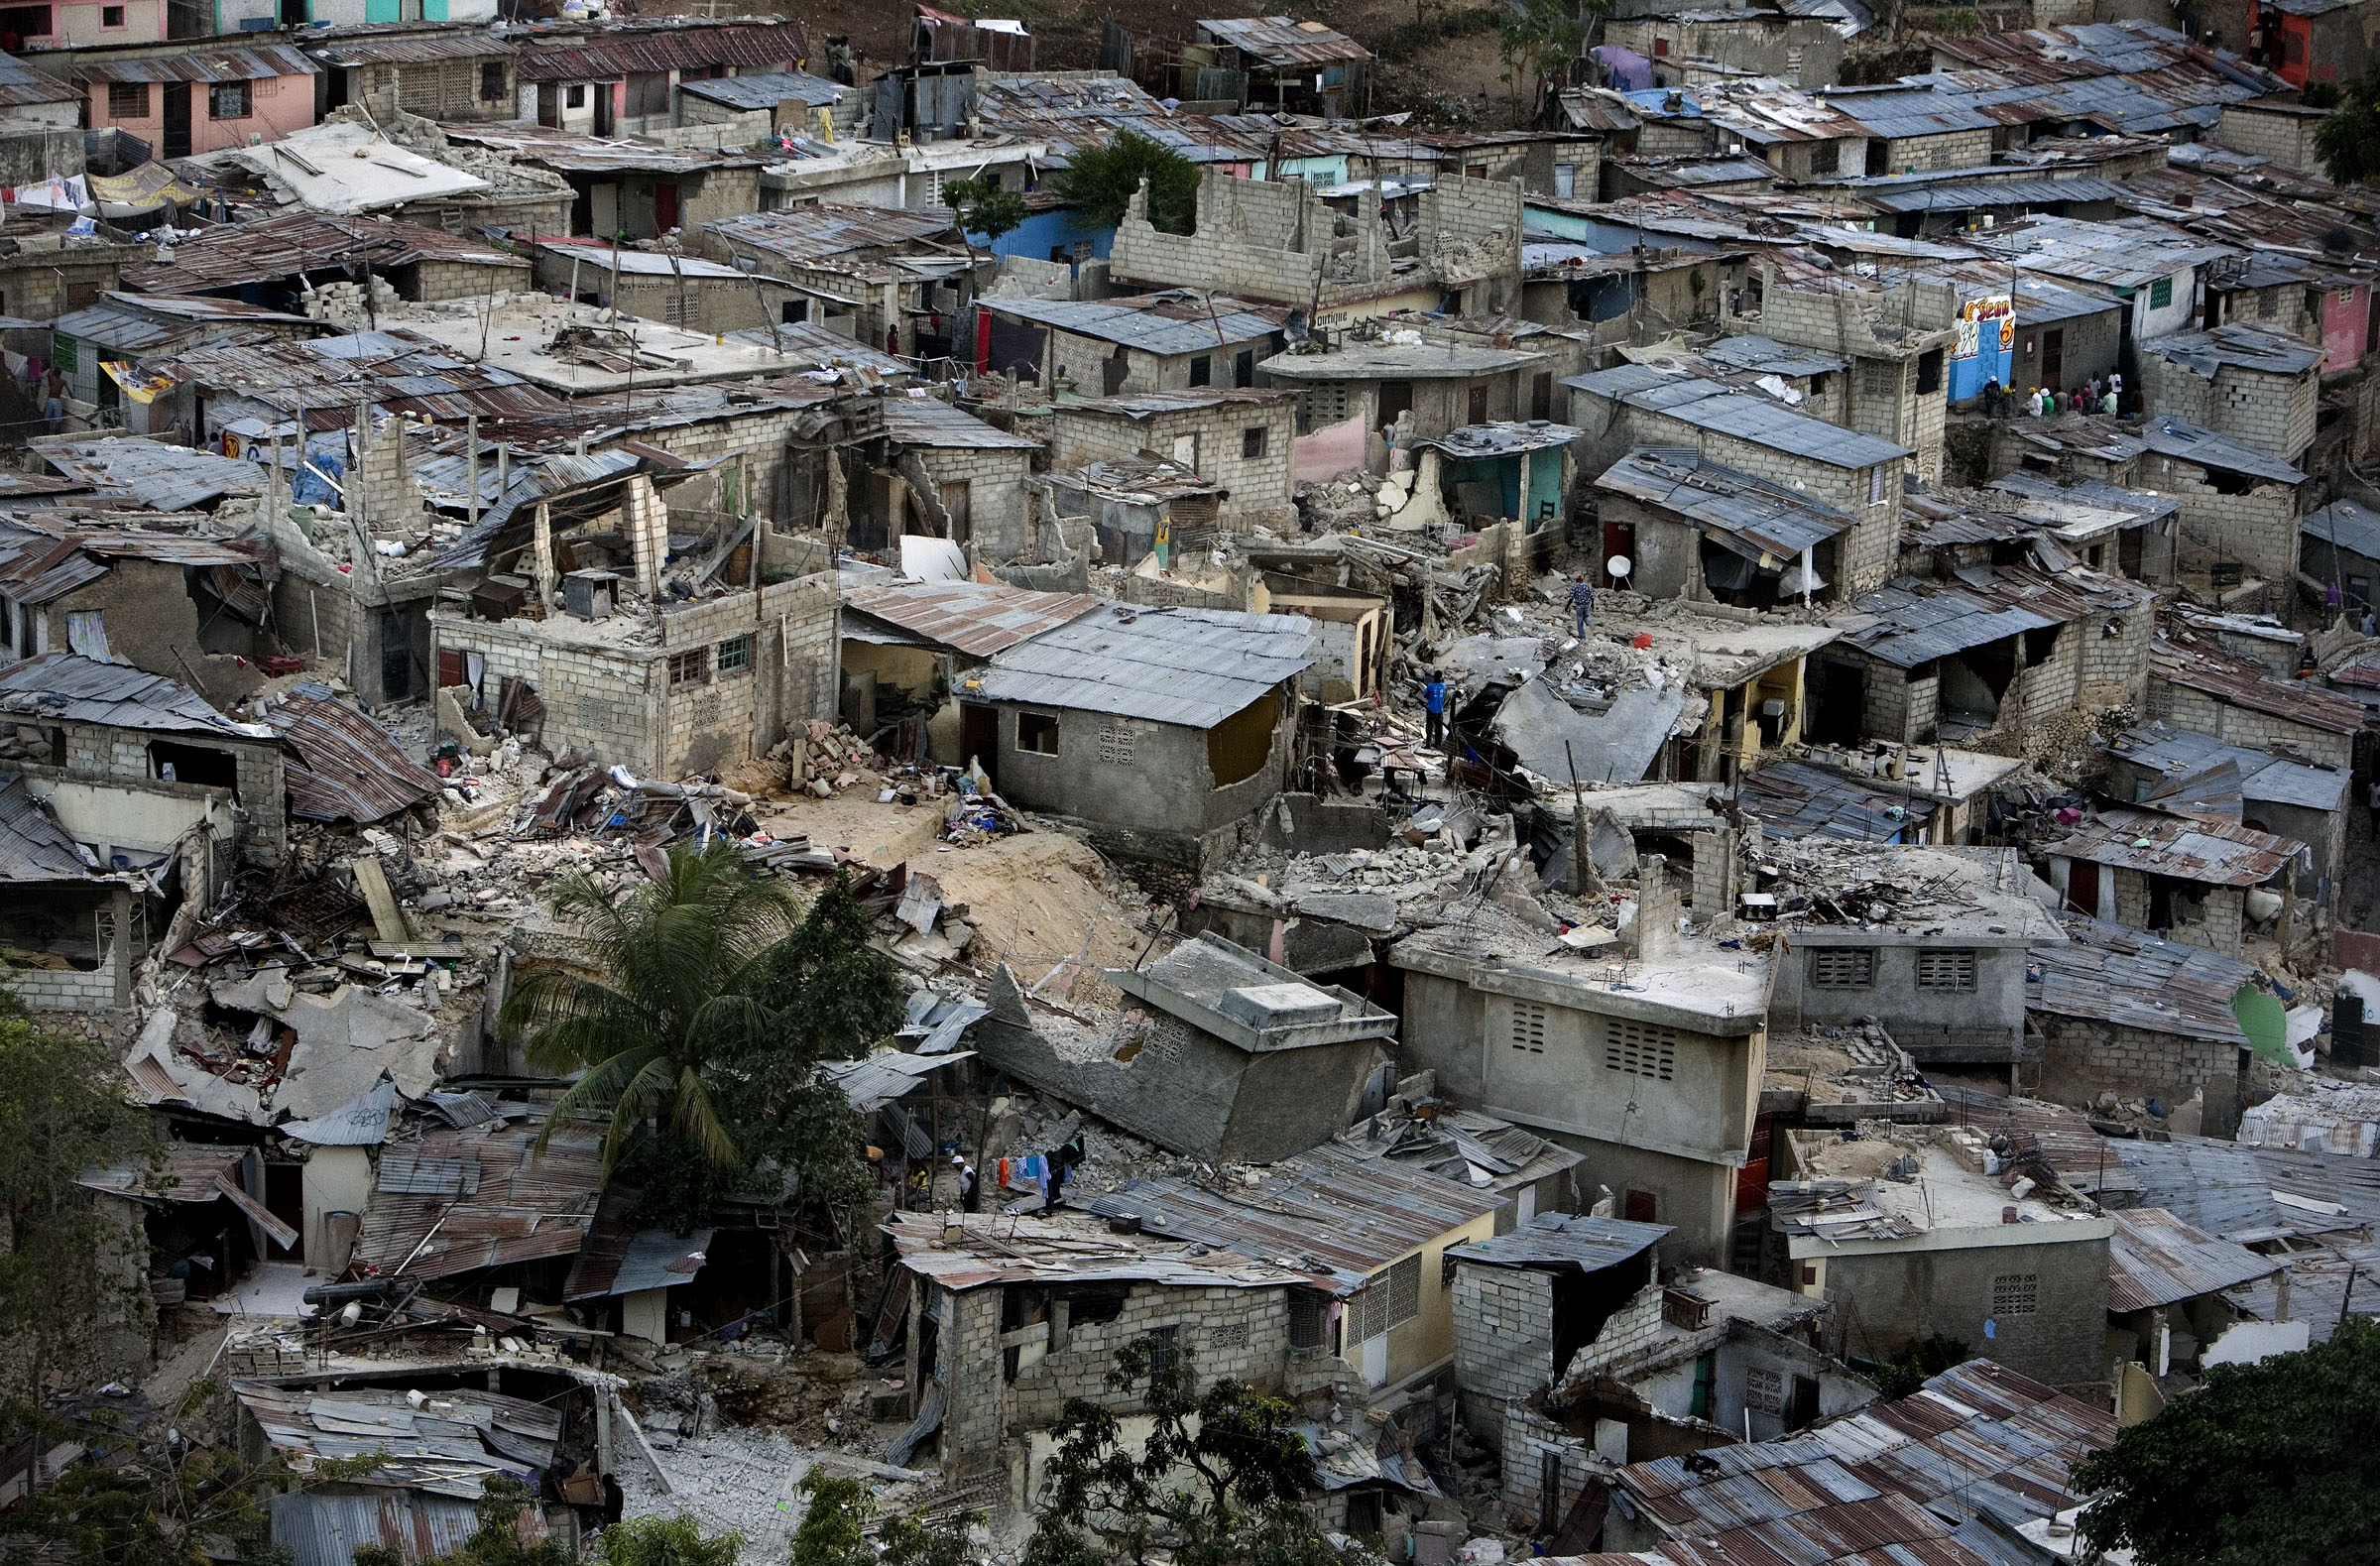 The destruction of Haiti's hillsides following the devastating earthquake.